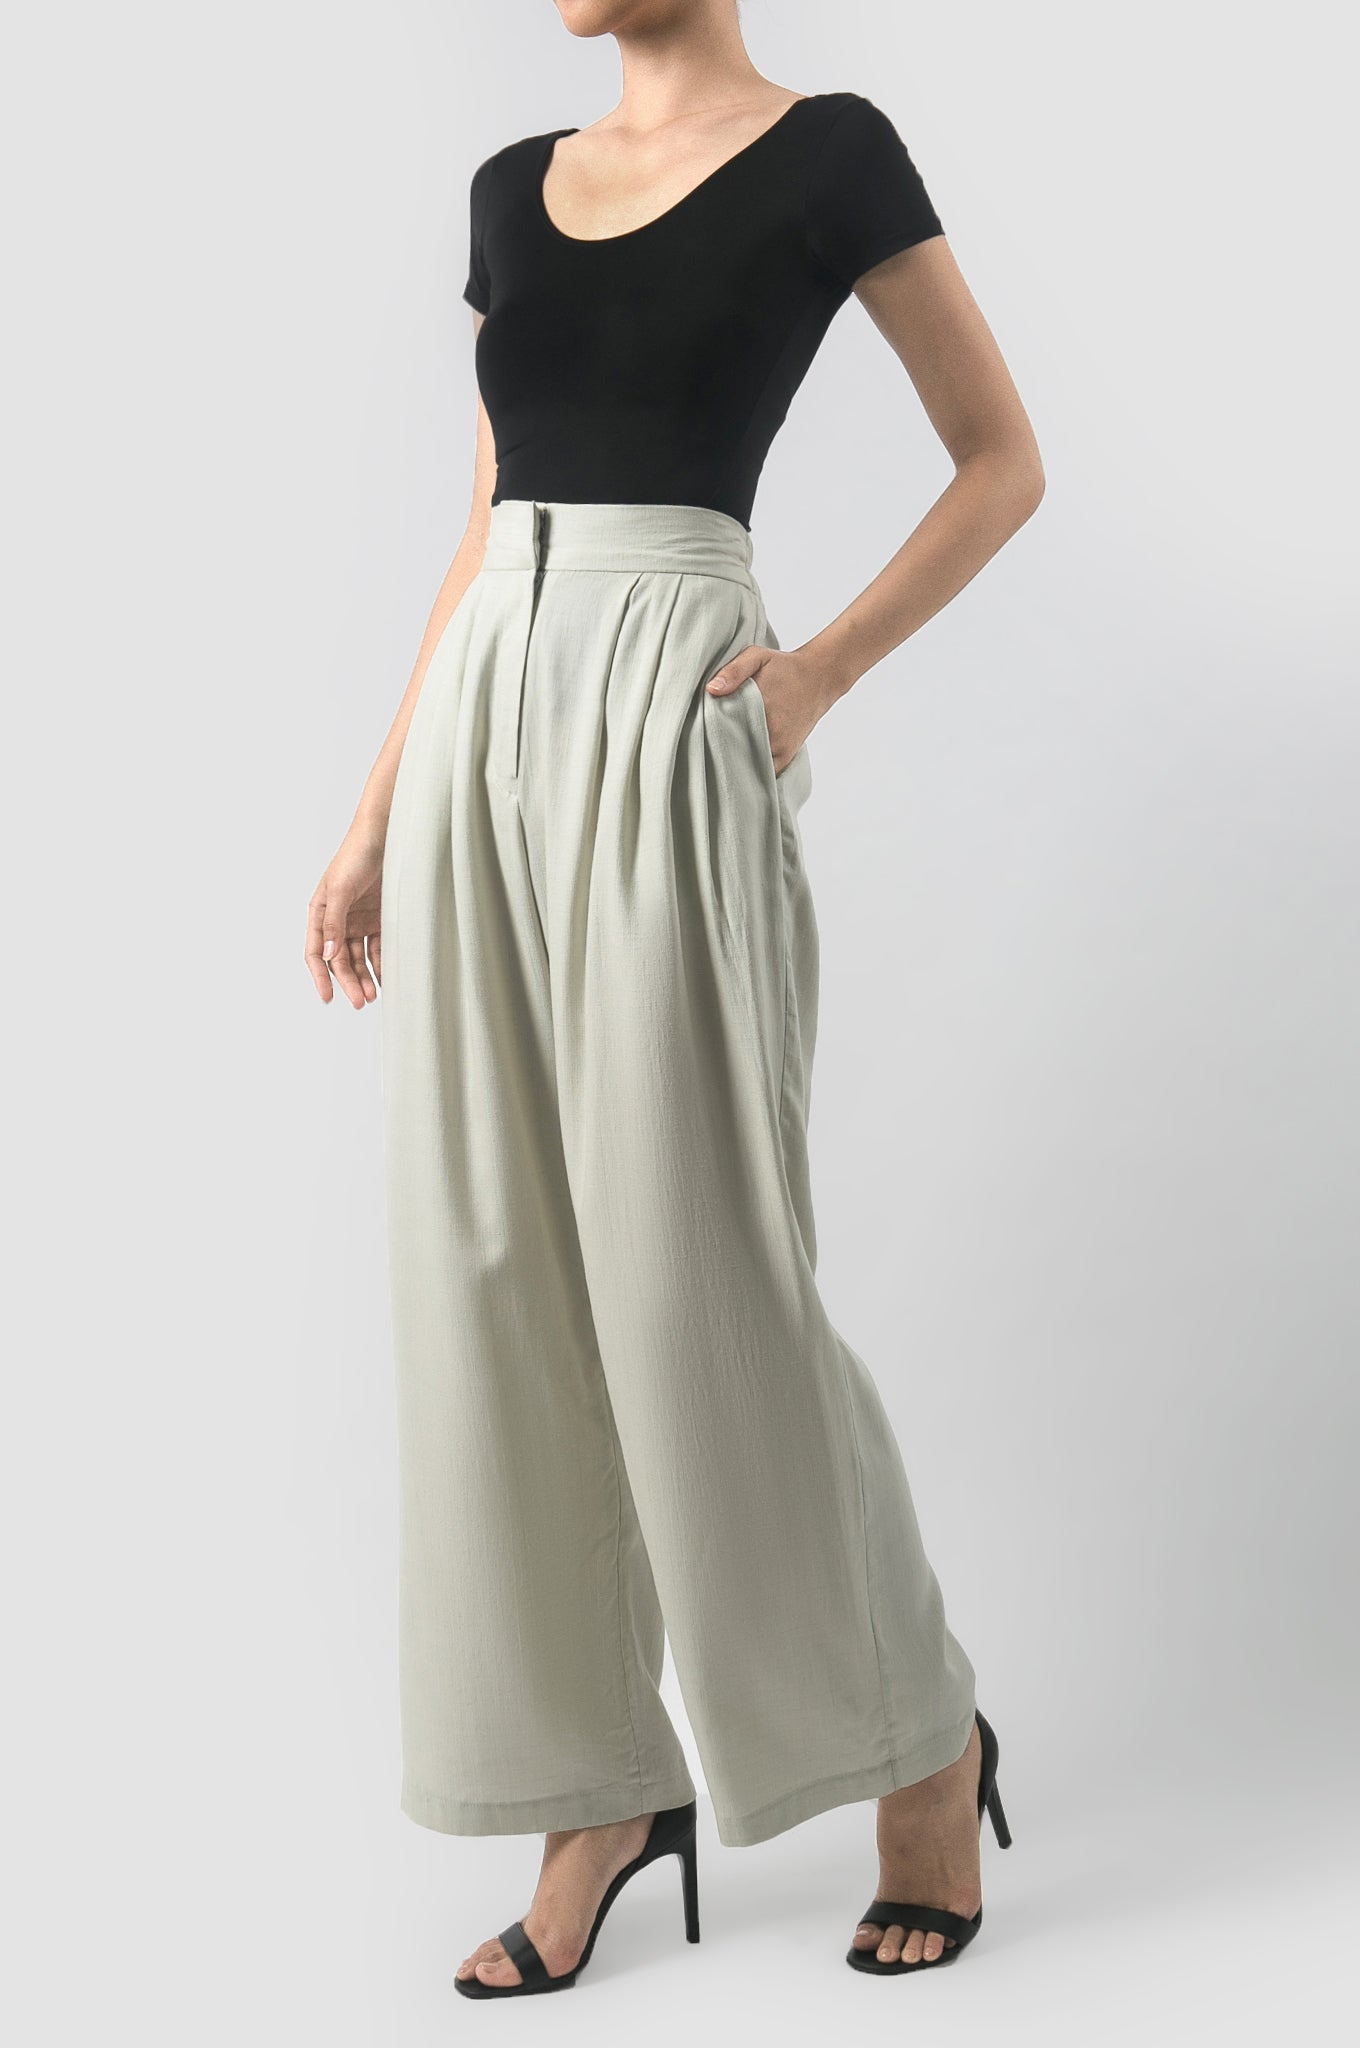 Mint Kavya Summer Pants